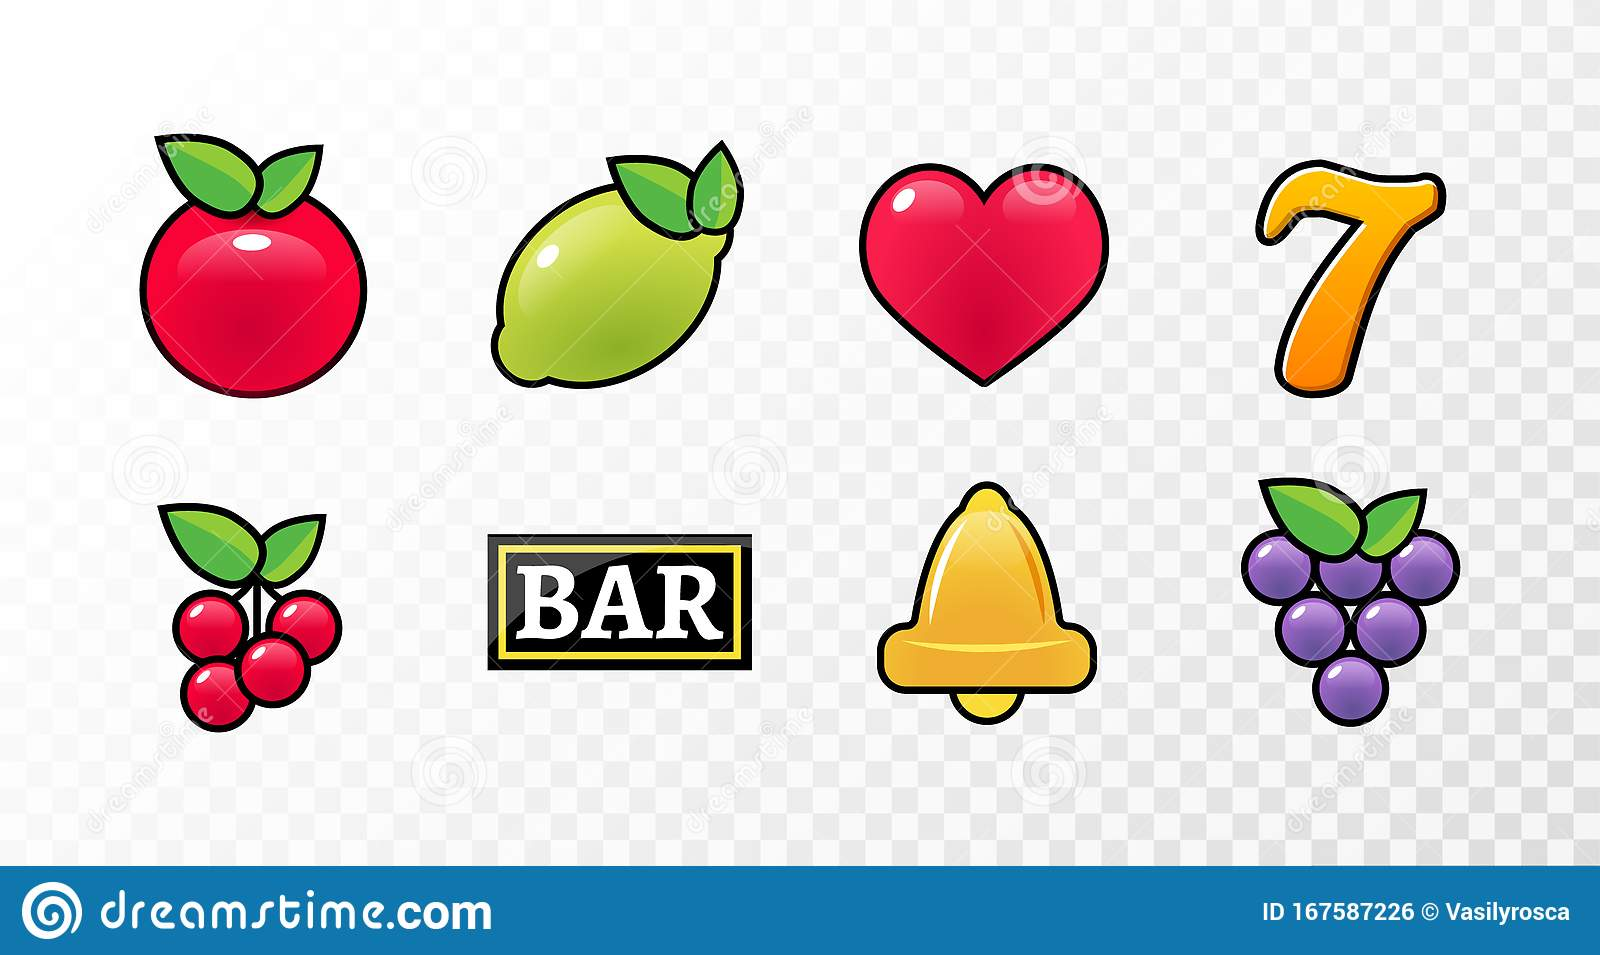 Casino Slot Machine Icon Symbol Vector Fruit Cherry Jackpot Seven Bell Game Lemon Stock Vector Illustration Of Game Lemon 167587226